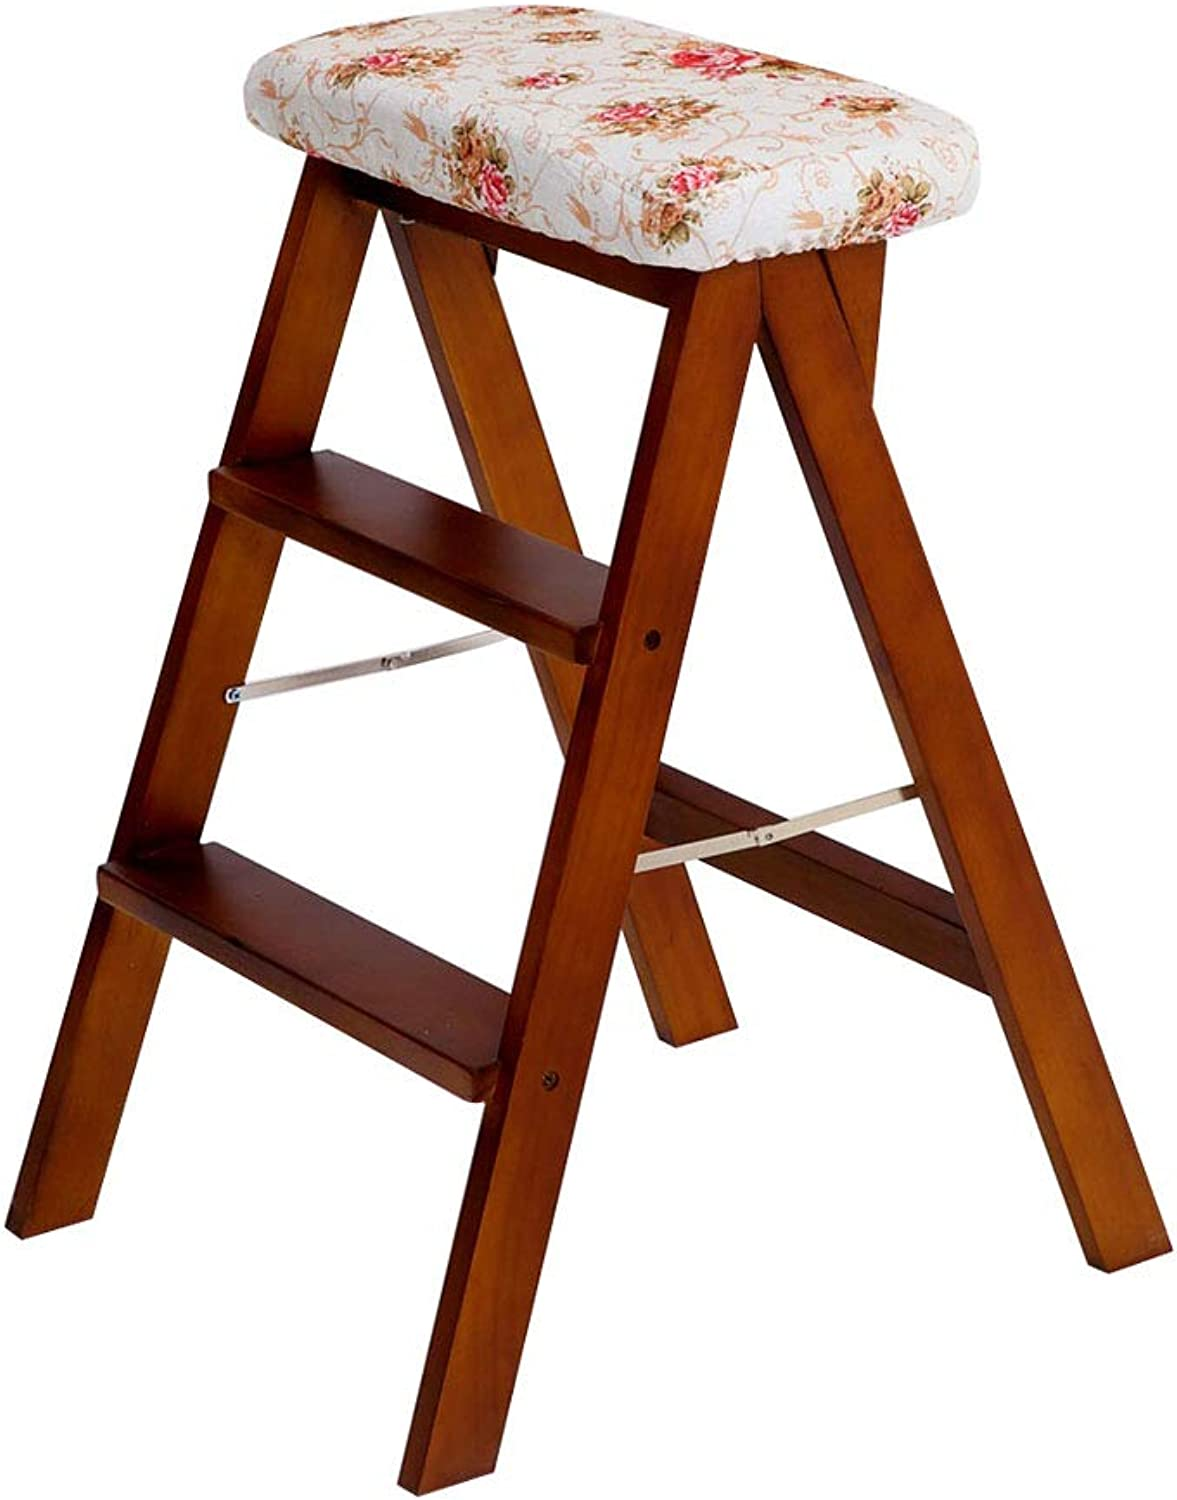 Portable Step Stool, Solid Wood Folding Step Stool Step Ladder, Indoor Multi-Function Chair - Bearing Weight 100kg, for Home Garden Office Kitchen Garage